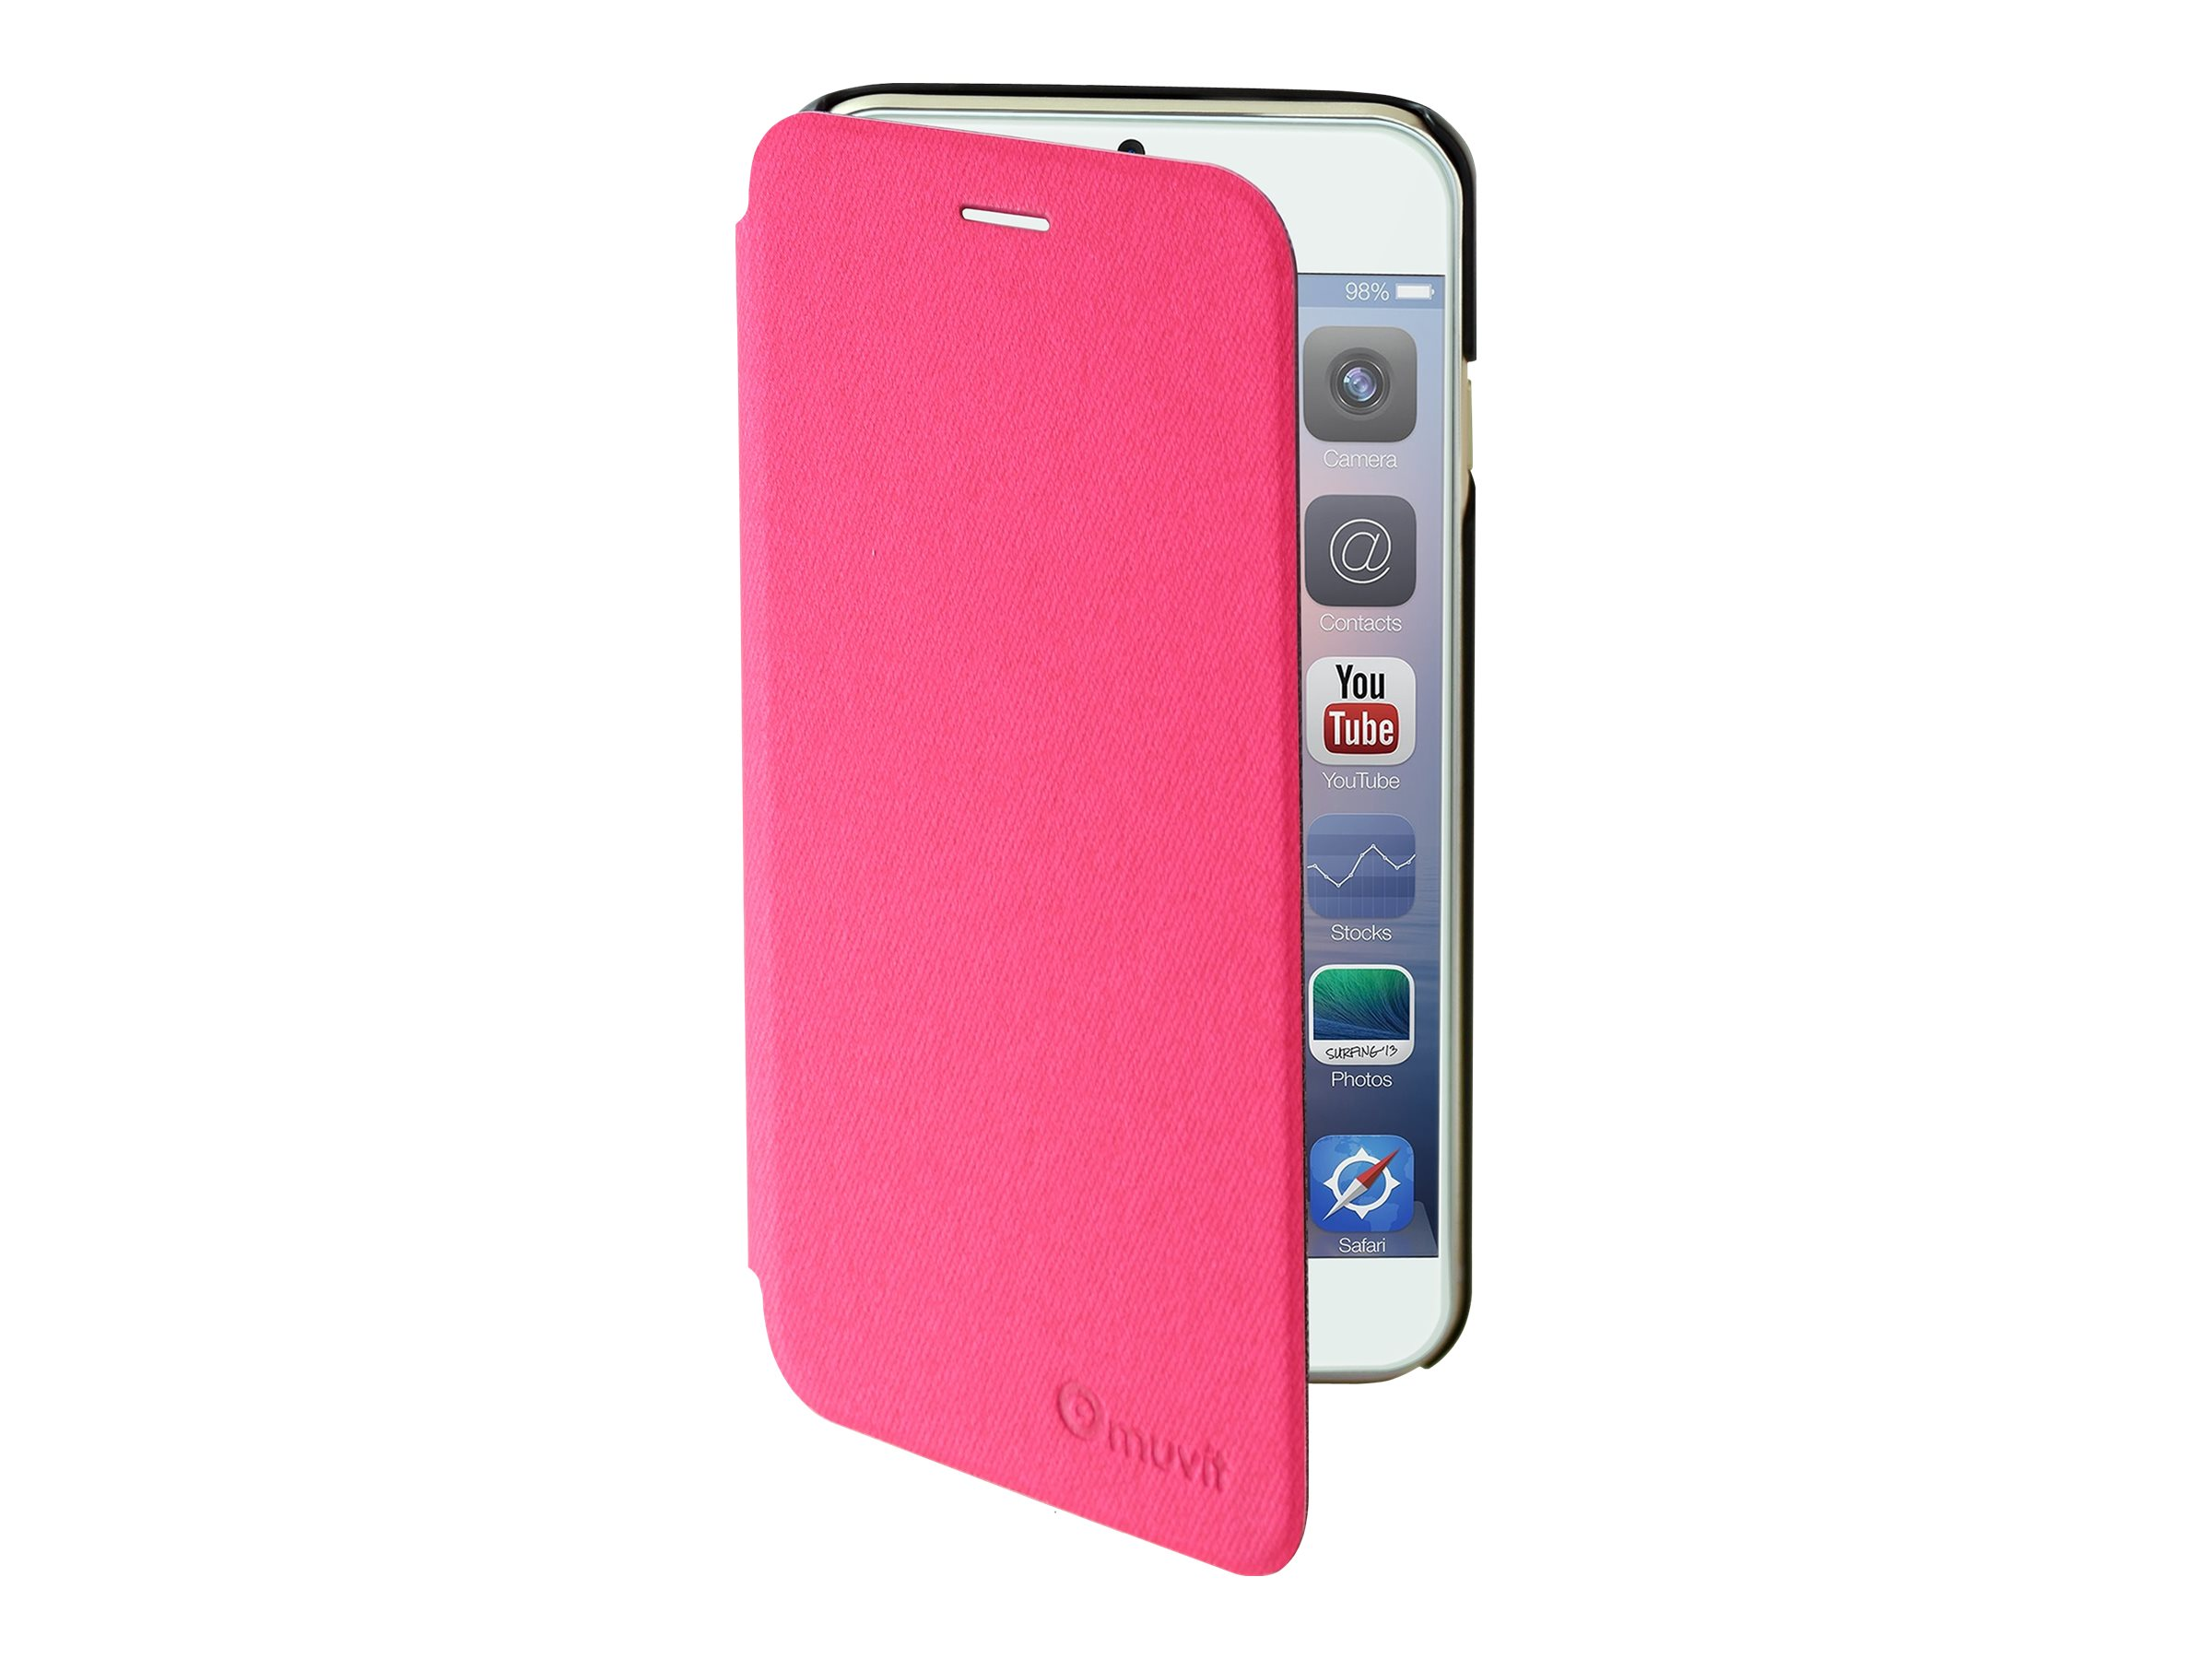 Muvit Easy Folio - Protection à rabat pour iPhone 6 Plus - rose, denim